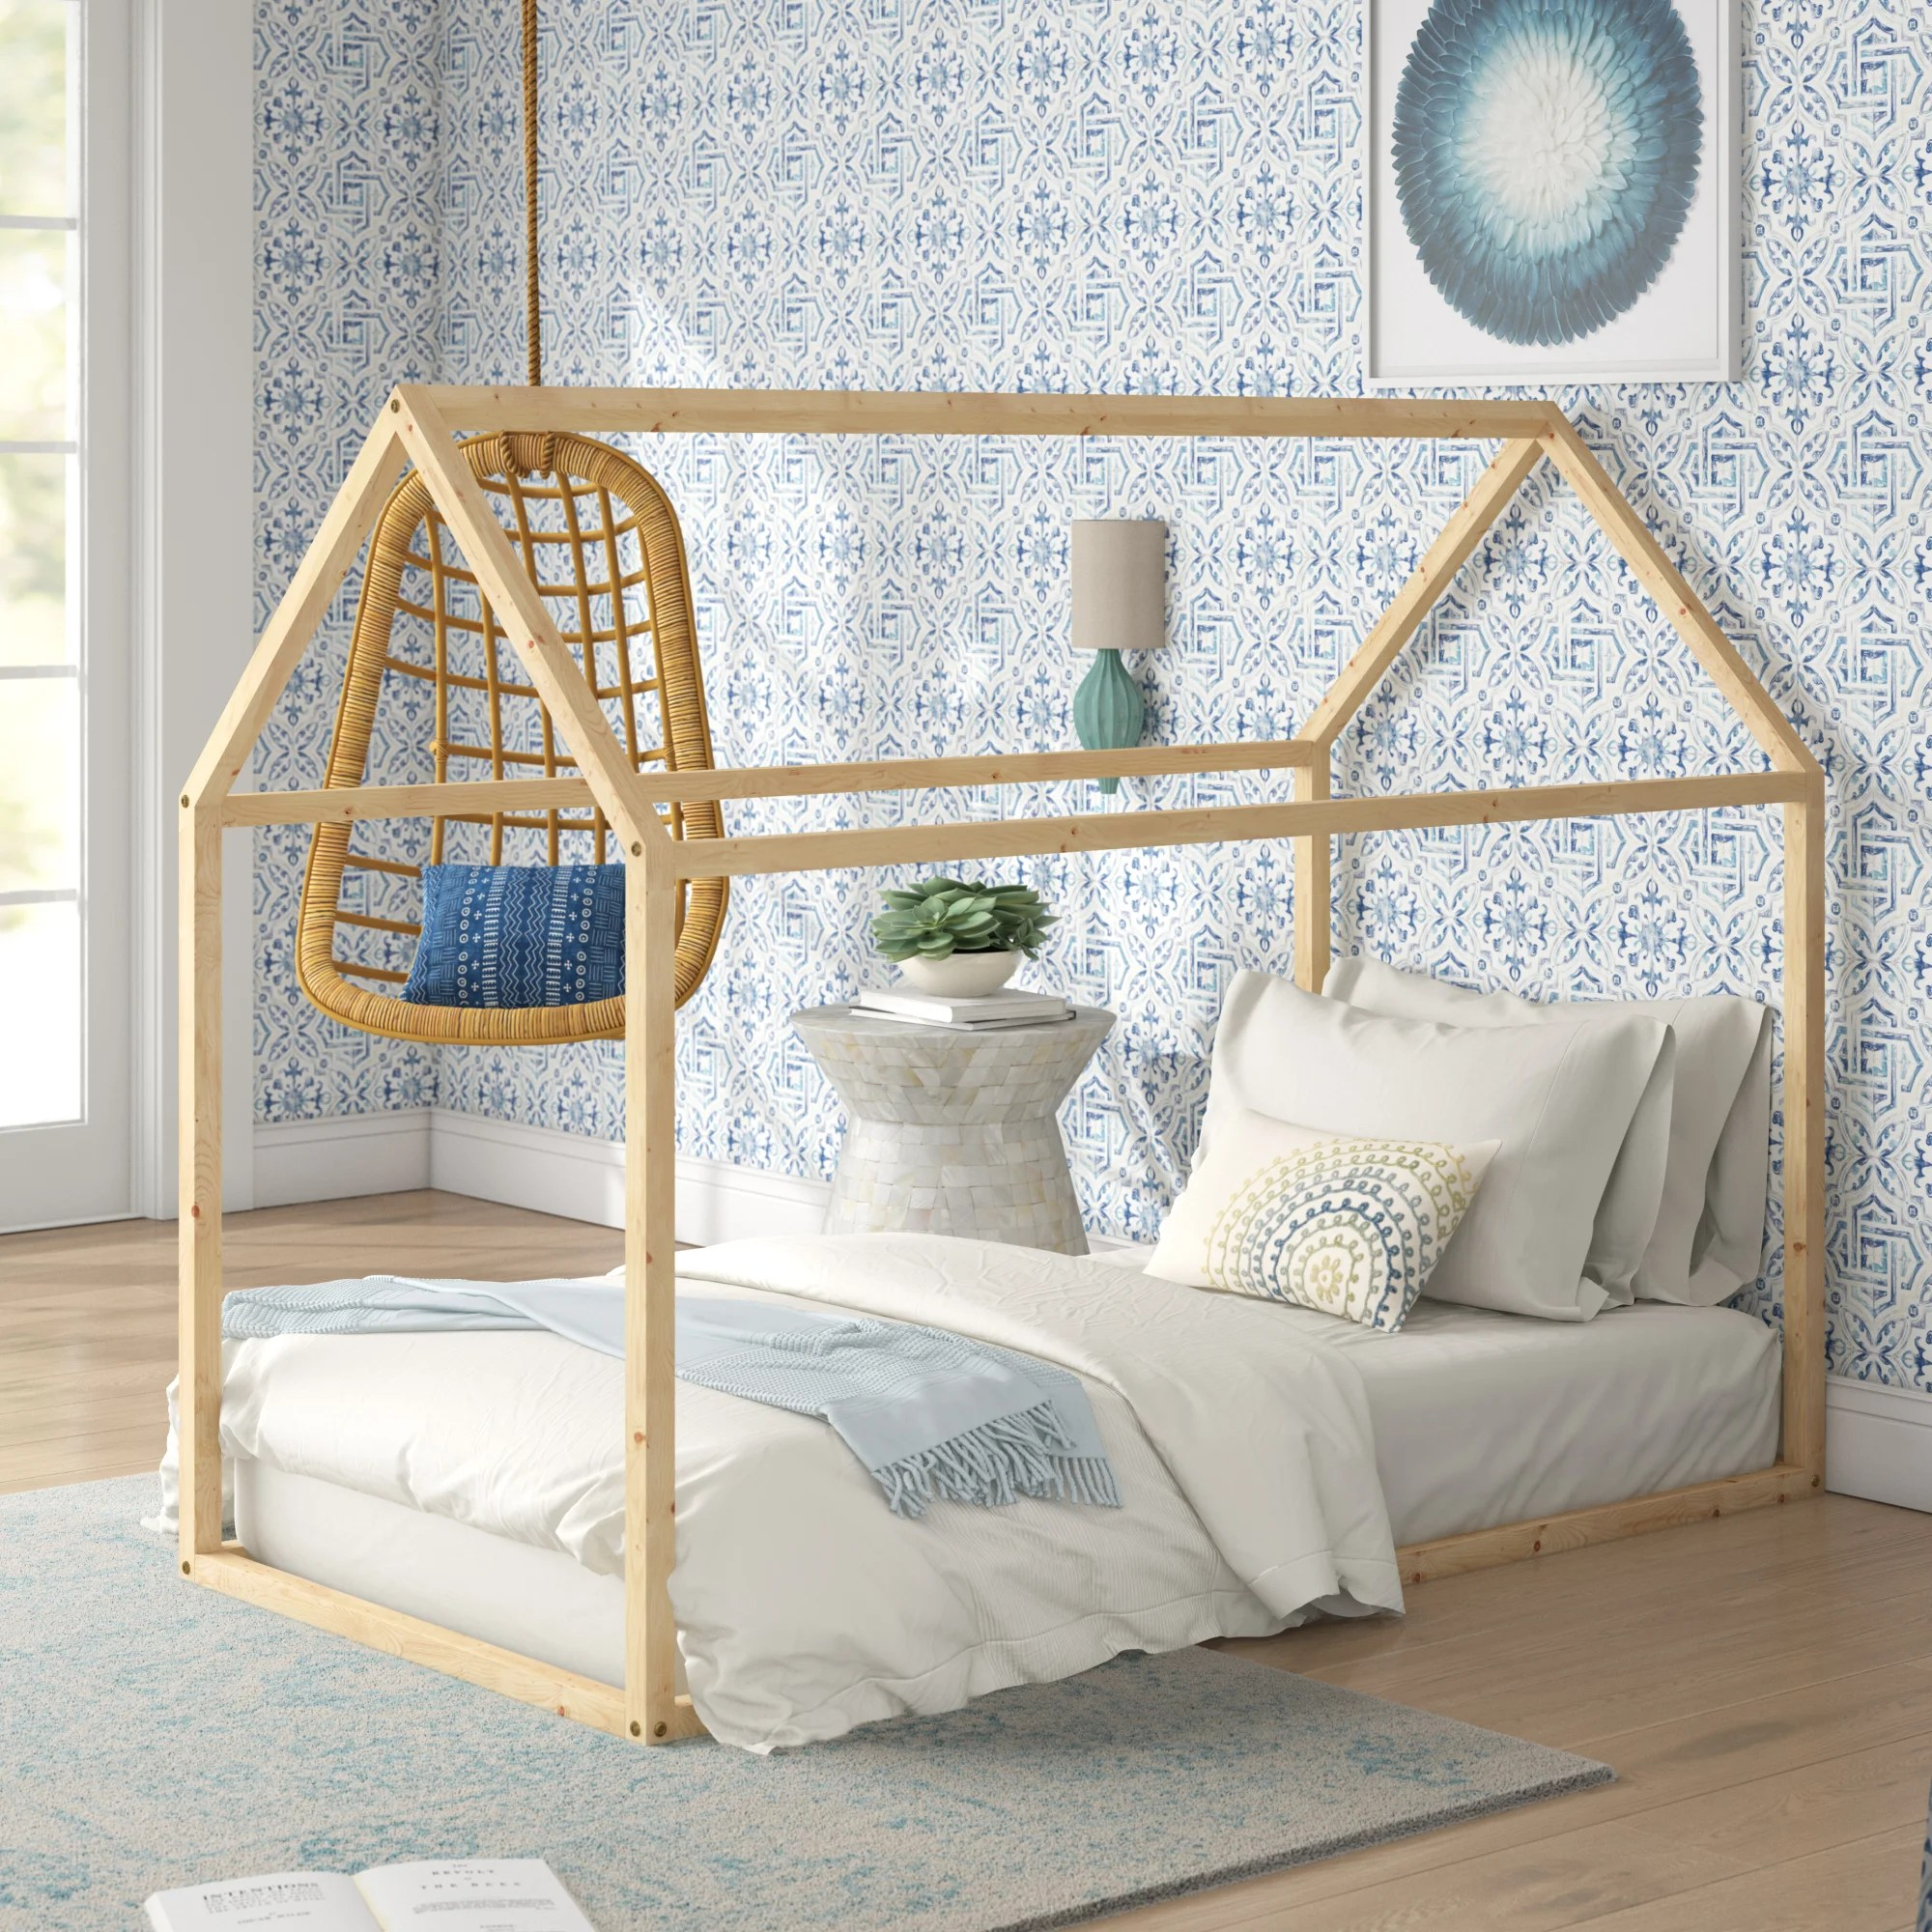 Isabelle Max Ledger Canopy Bed Reviews Wayfair